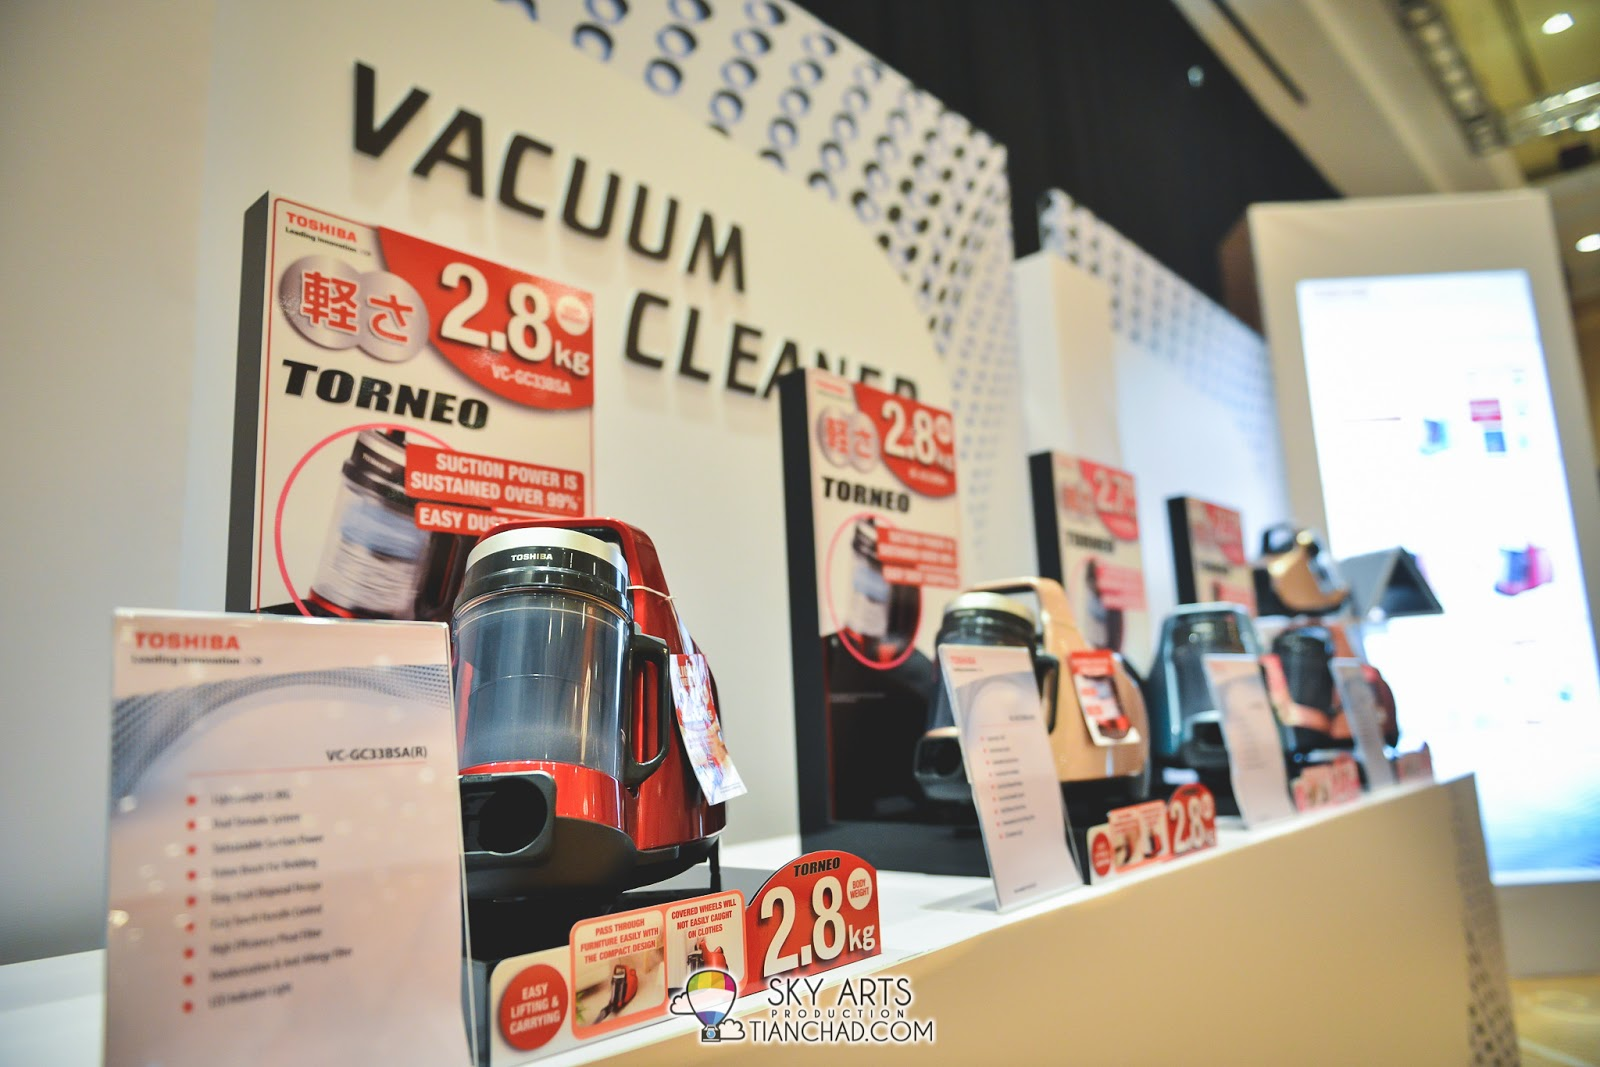 Toshiba New Torneo Vacuum Cleaner - Lightweight wonder (2.8kg) with Ultra Hygienic cleaning performance